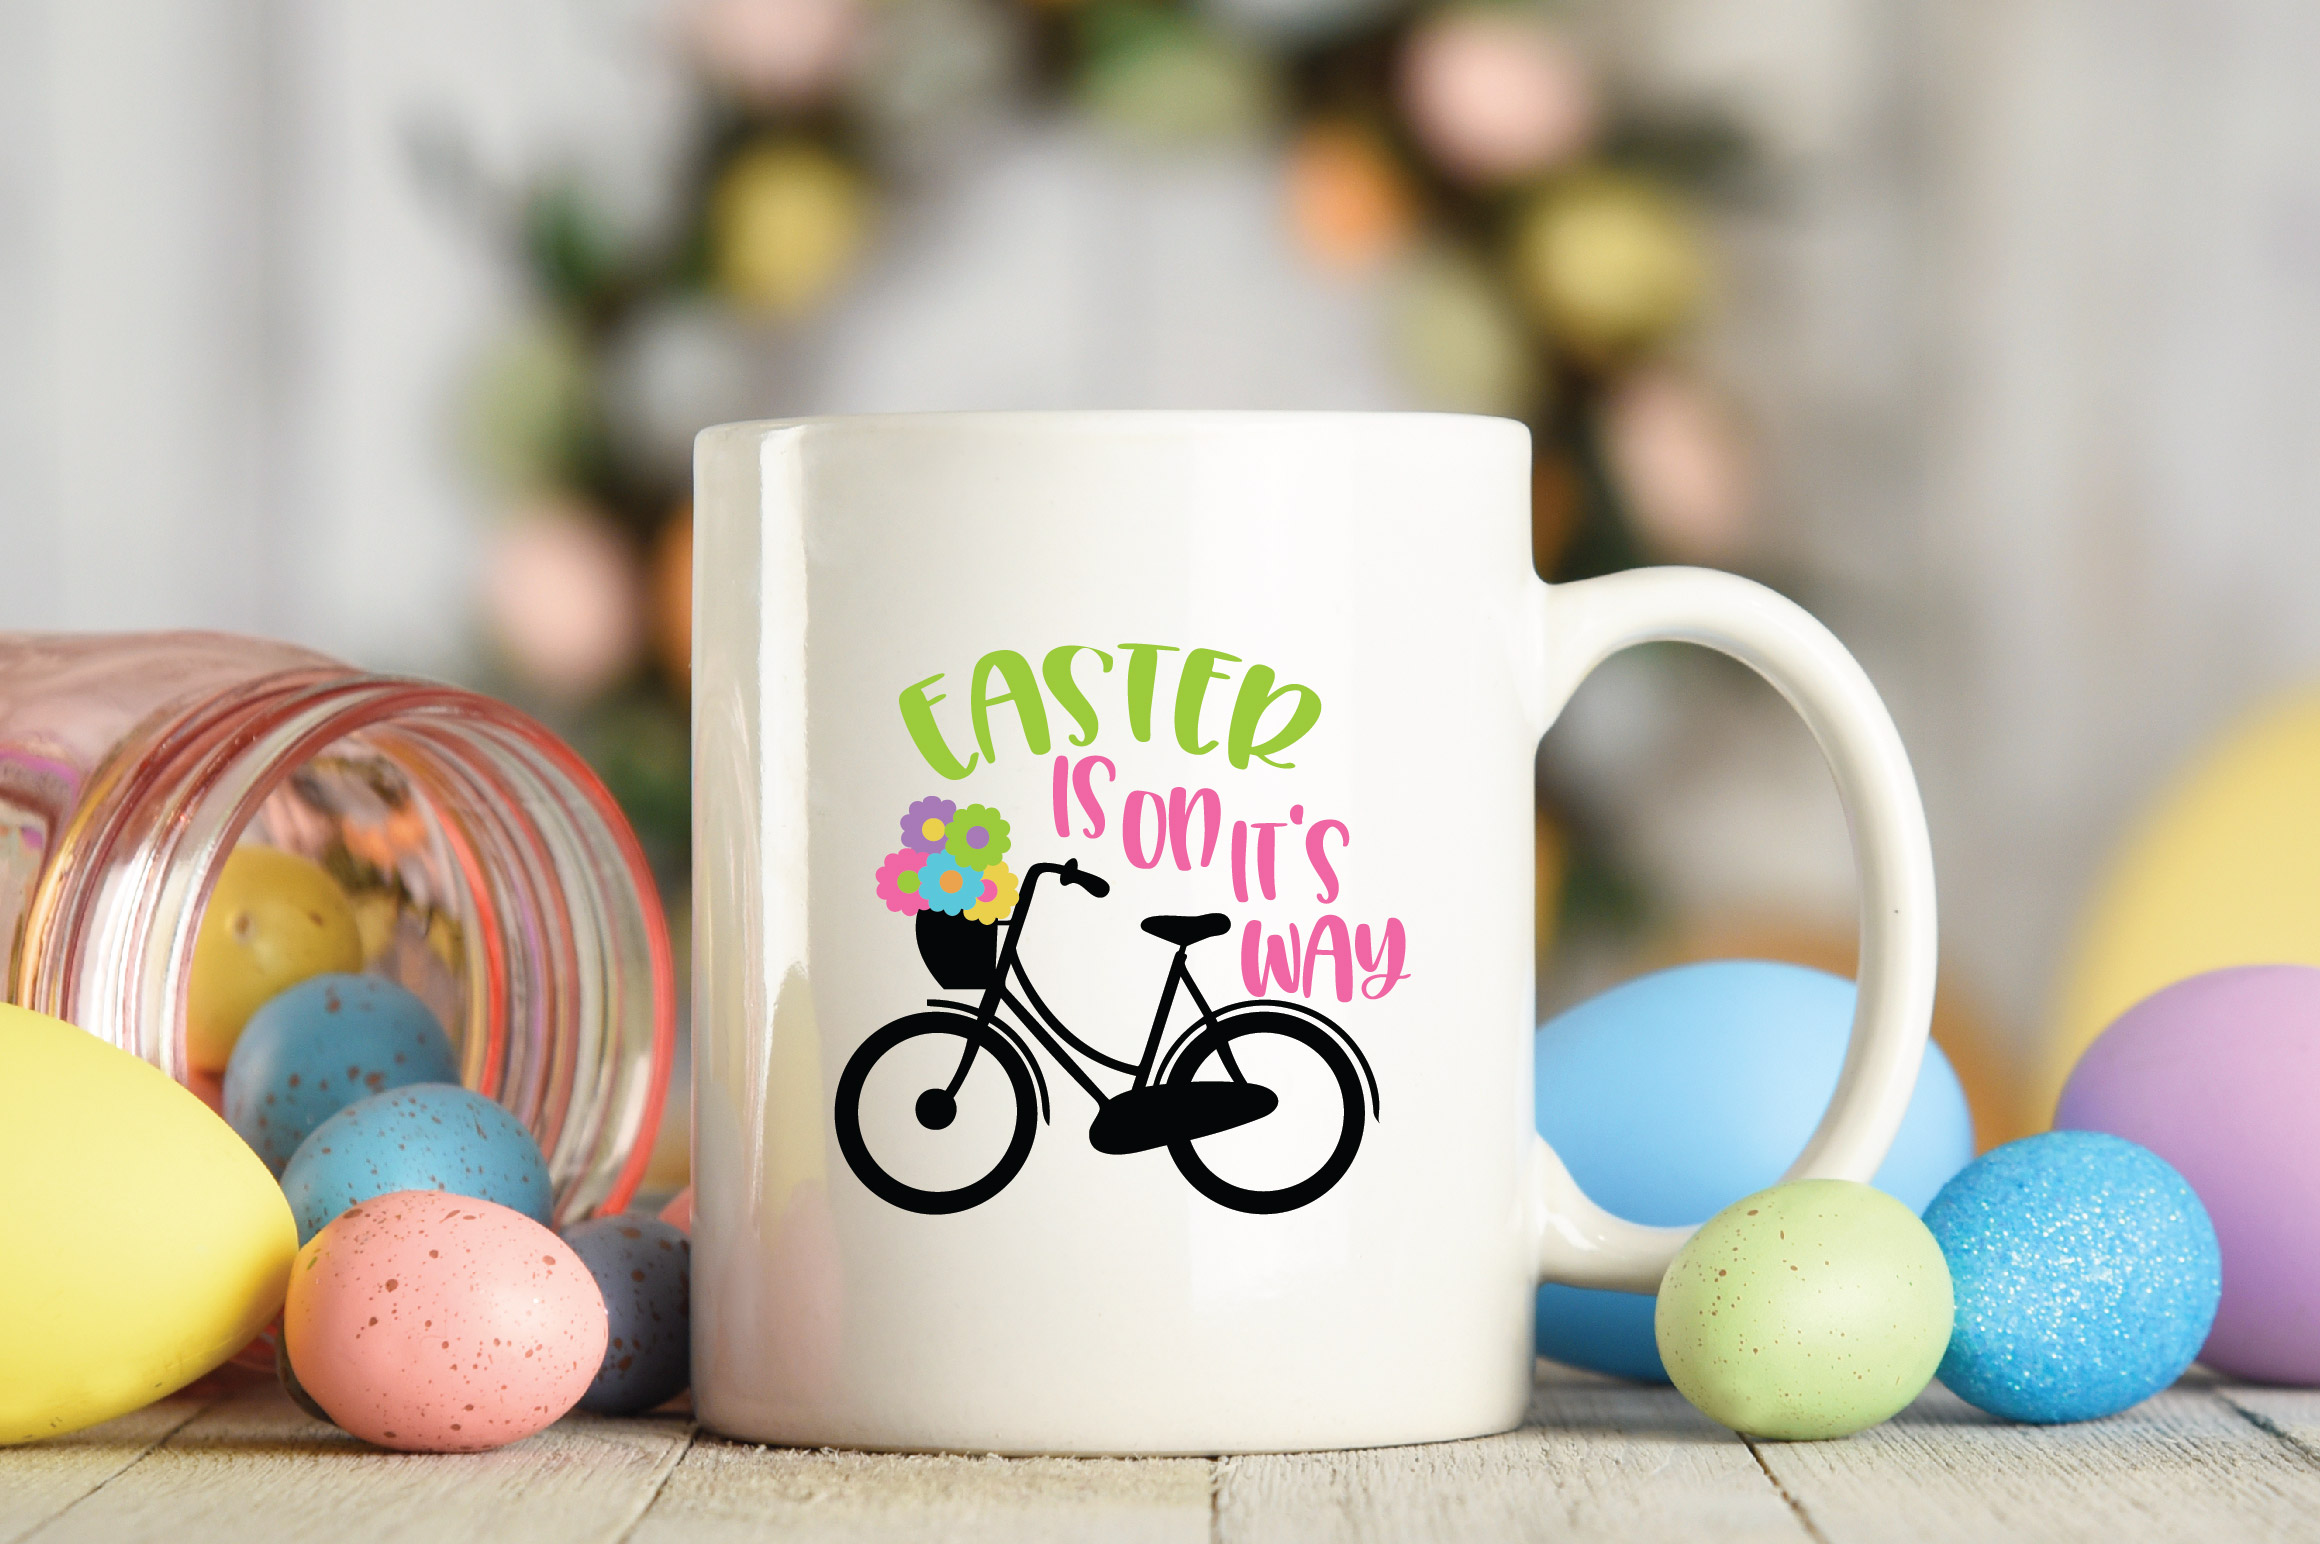 Easter SVG Cut File - Easter is on it's way SVG DXF EPS PNG example image 3